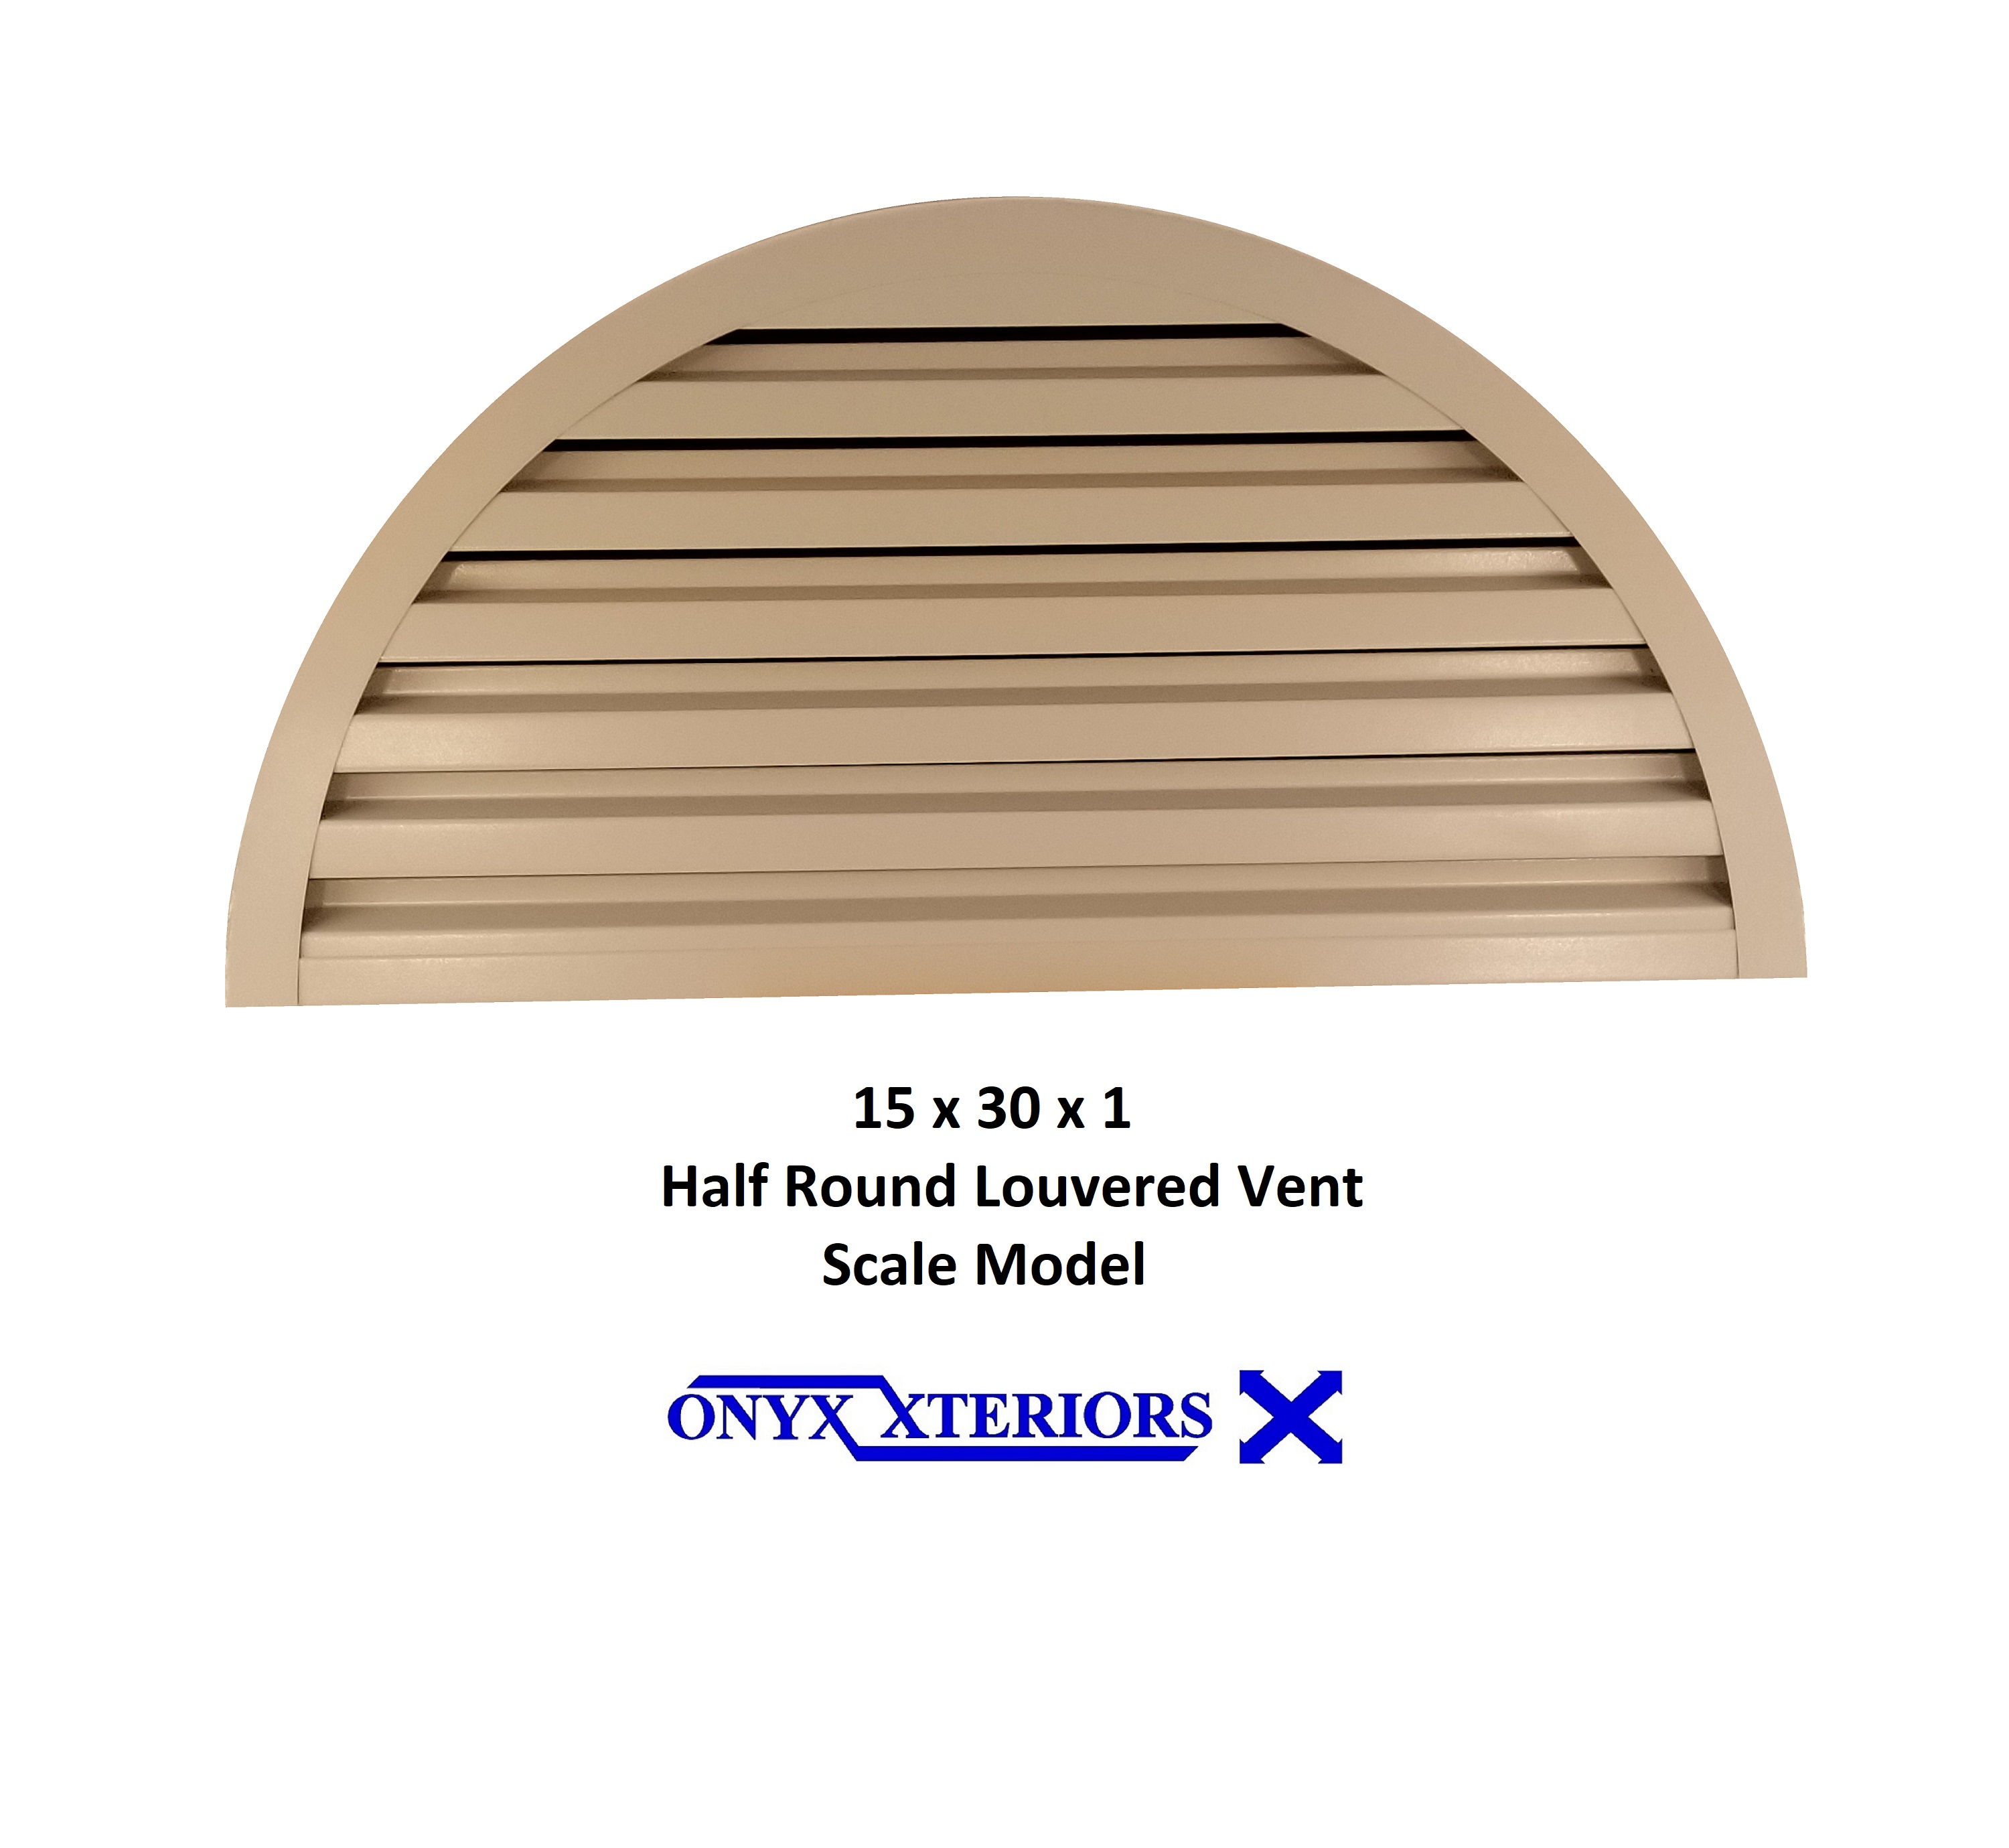 Front Flange Common Half Round Gable Vents SS